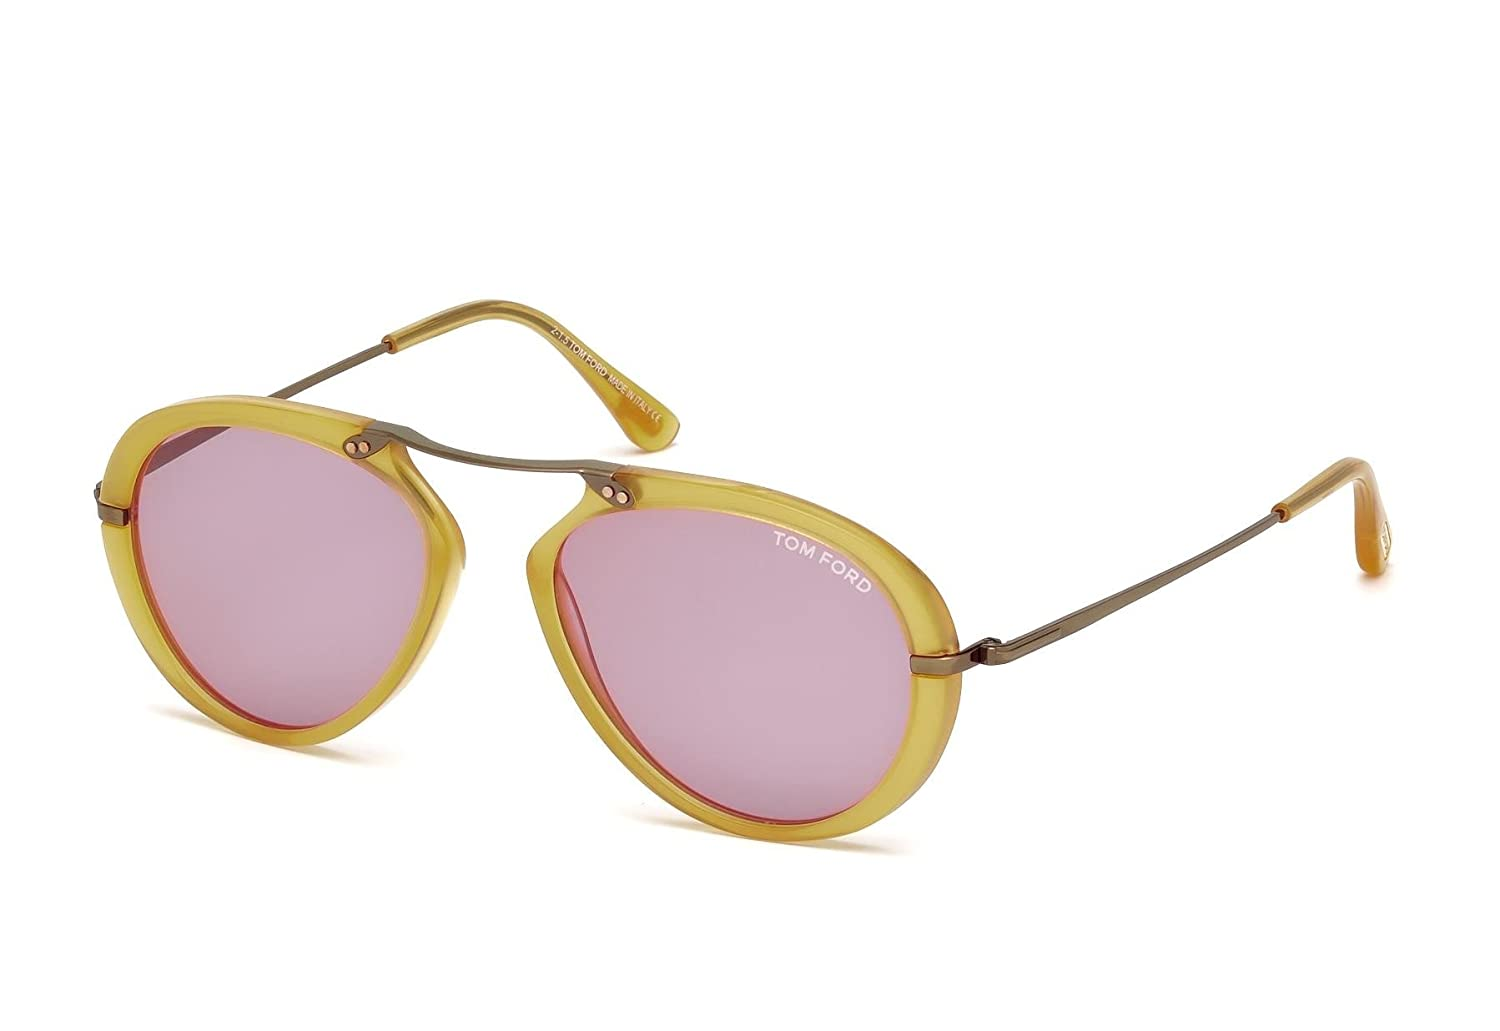 a241c1df55cff Amazon.com  Tom Ford Aaron FT0473 Sunglasses Yellow w Purple Lens 39Y  TF0473 473  Clothing